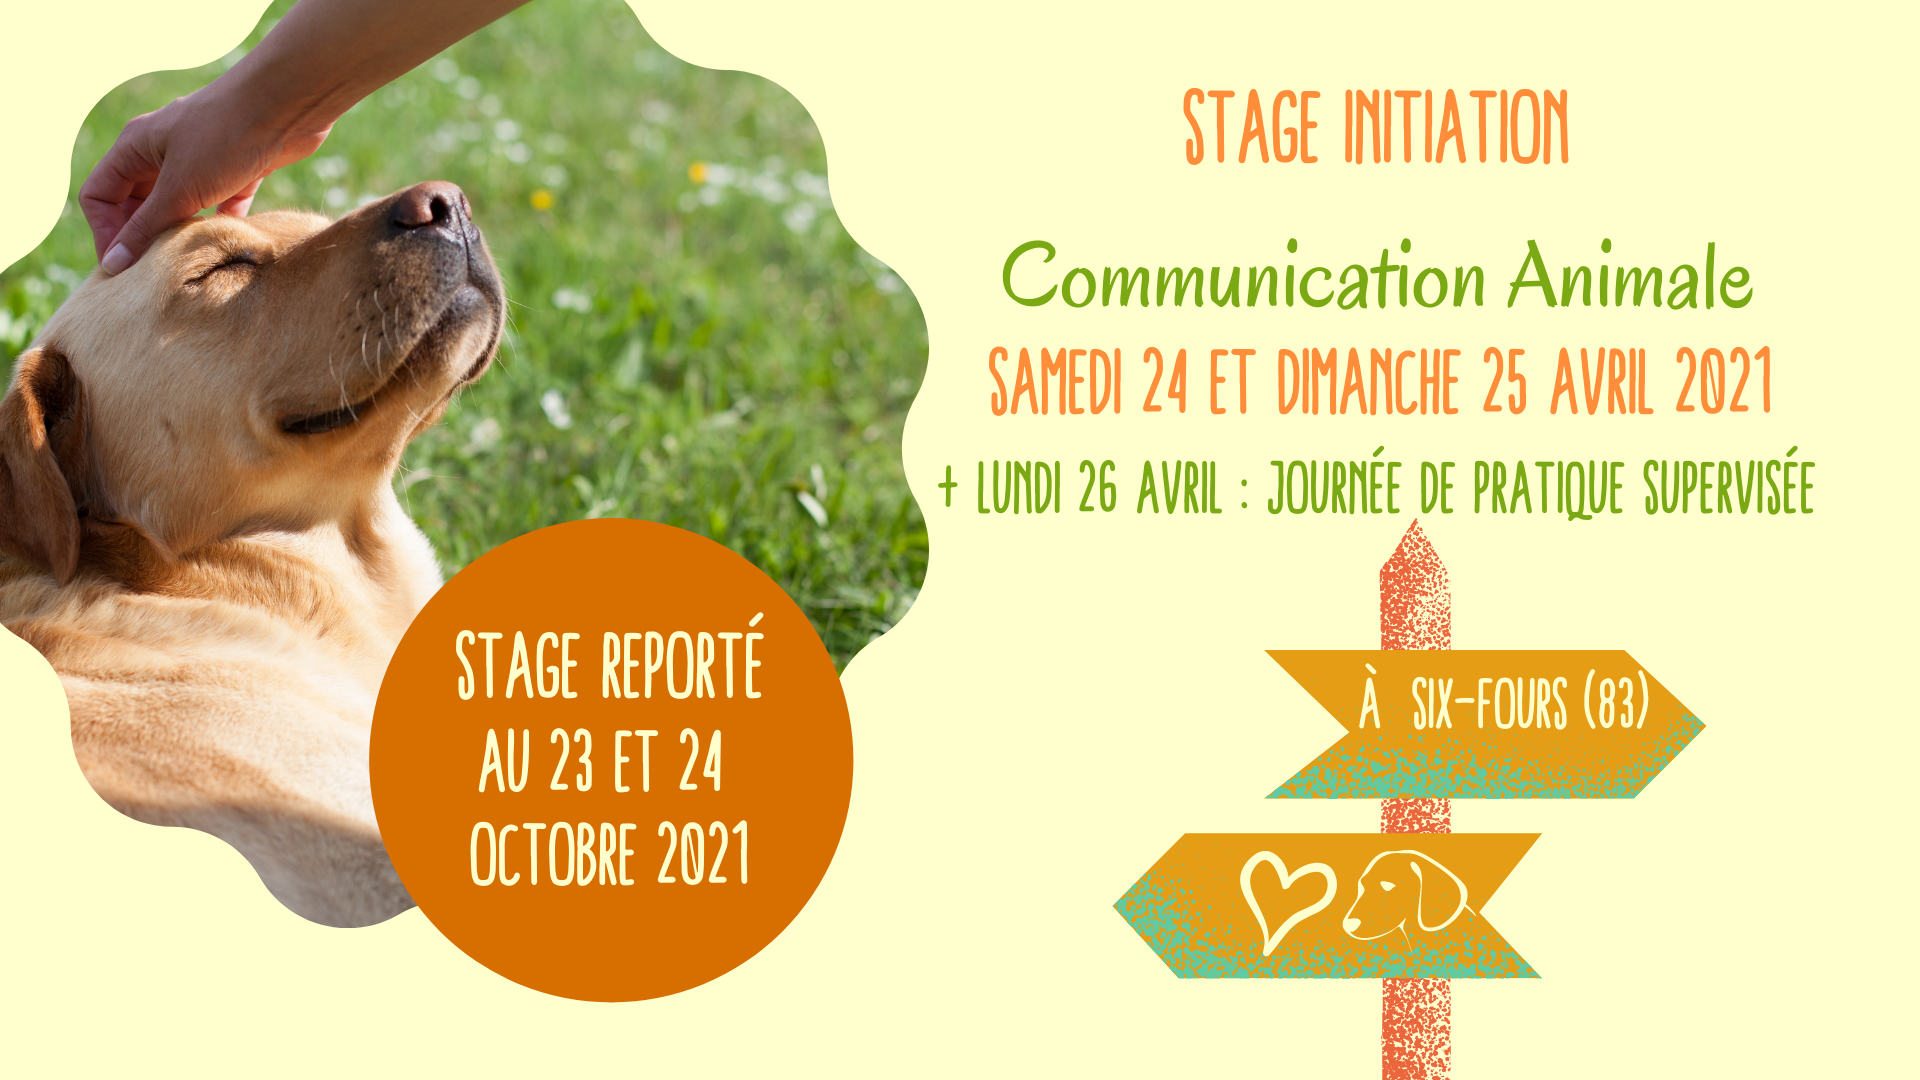 stage initiation communication animale